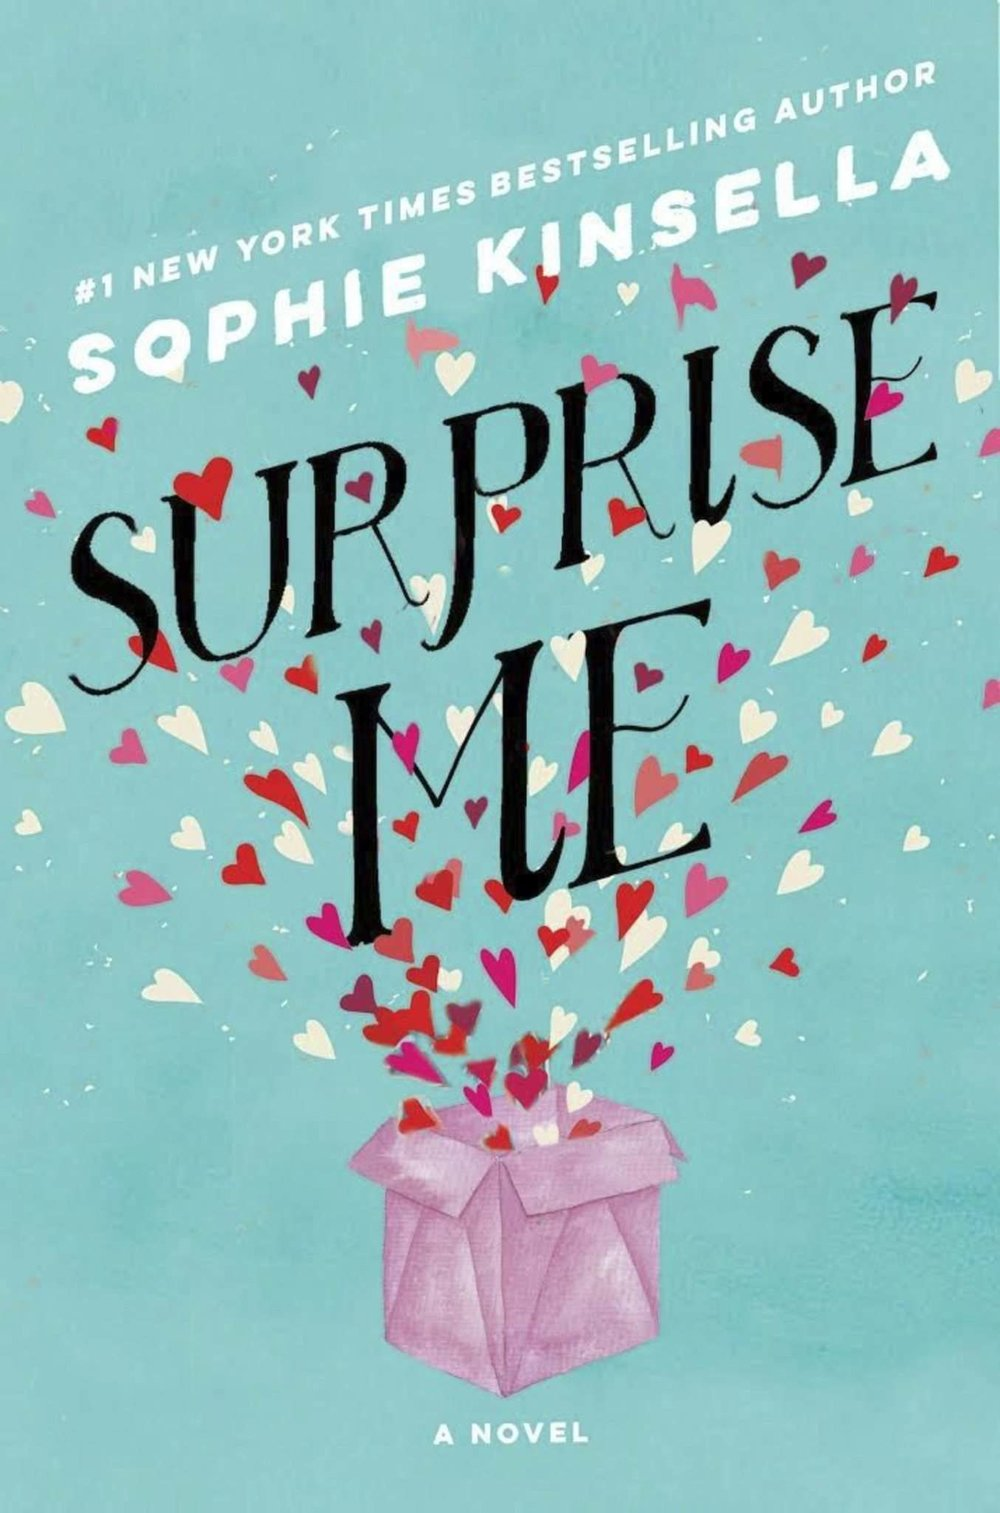 5 Books to Read that will Get You Through April Showers - Surprise Me by Sophie Kinsella